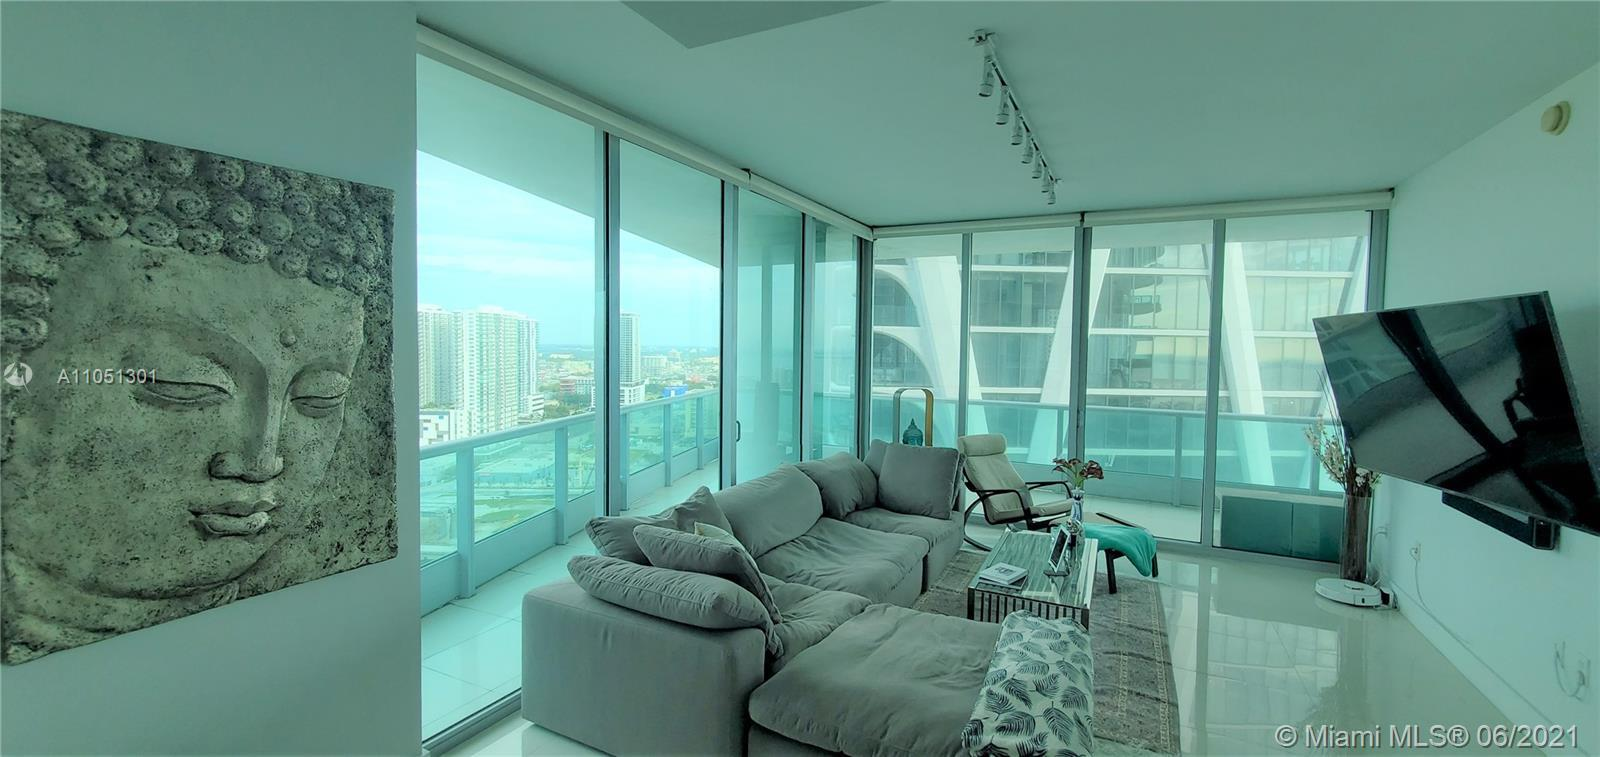 ATTENTION AGENTS!! Scroll up and click on the Virtual Tour link for AMAZING 4K video tour!!!